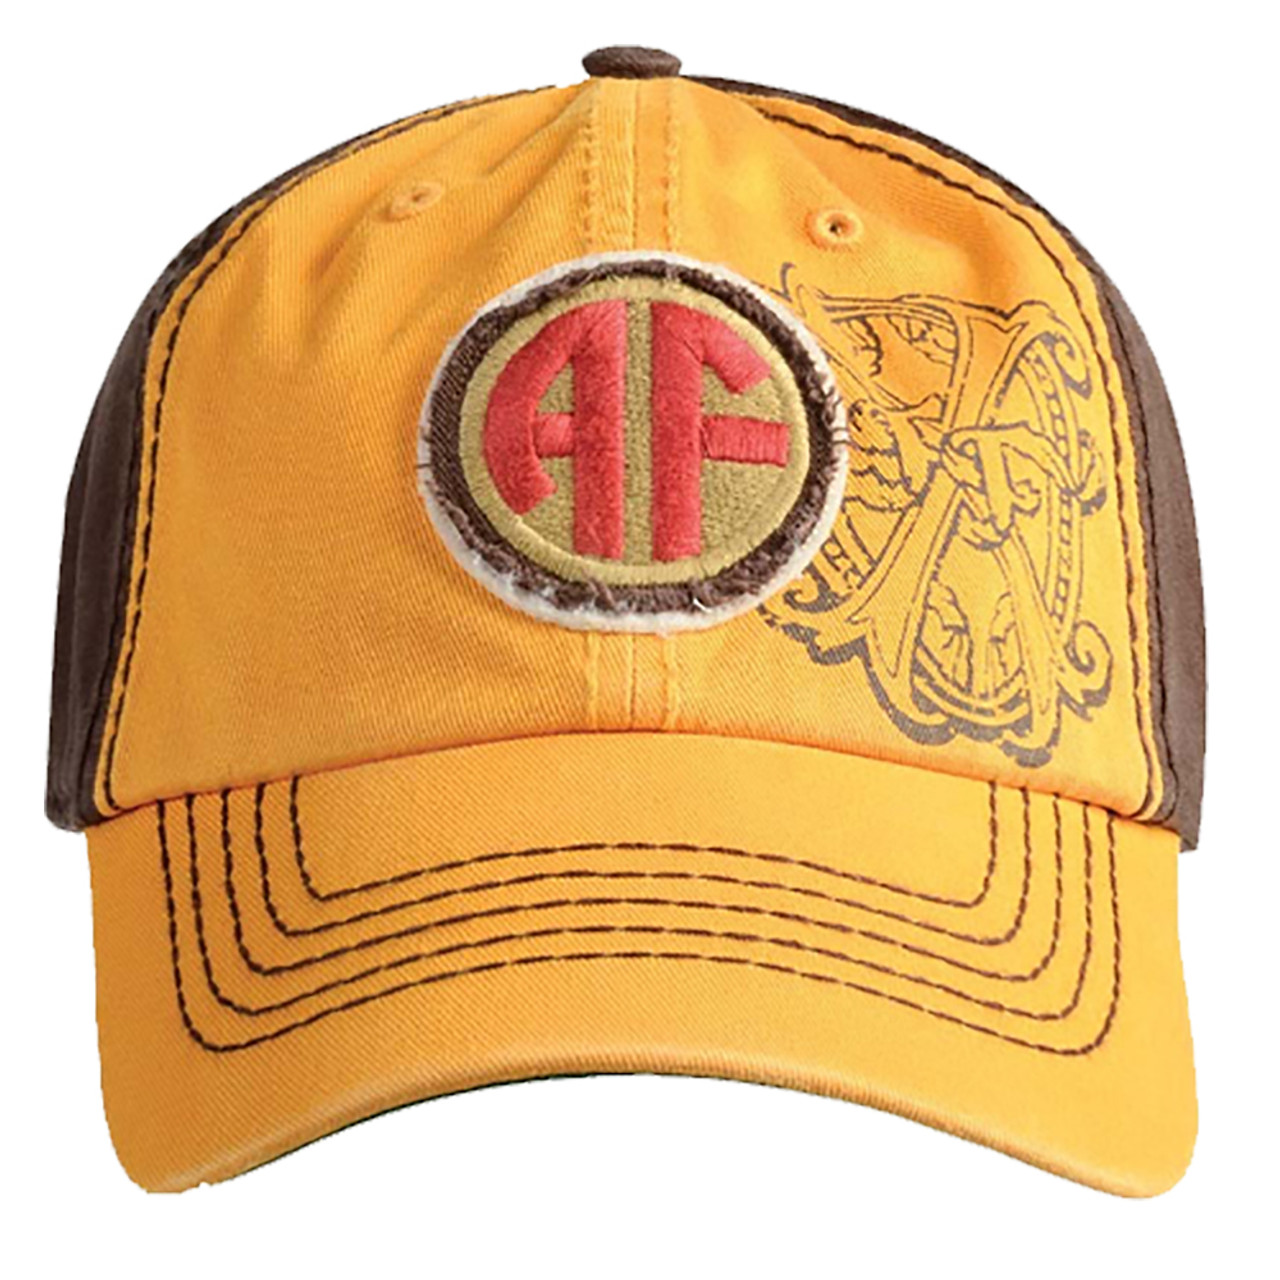 4cf6ce12d02 ARTURO FUENTE AF OPUS X LOGO BASEBALL HAT - GOLD AND BROWN  63063.1529821282.jpg c 2 imbypass on